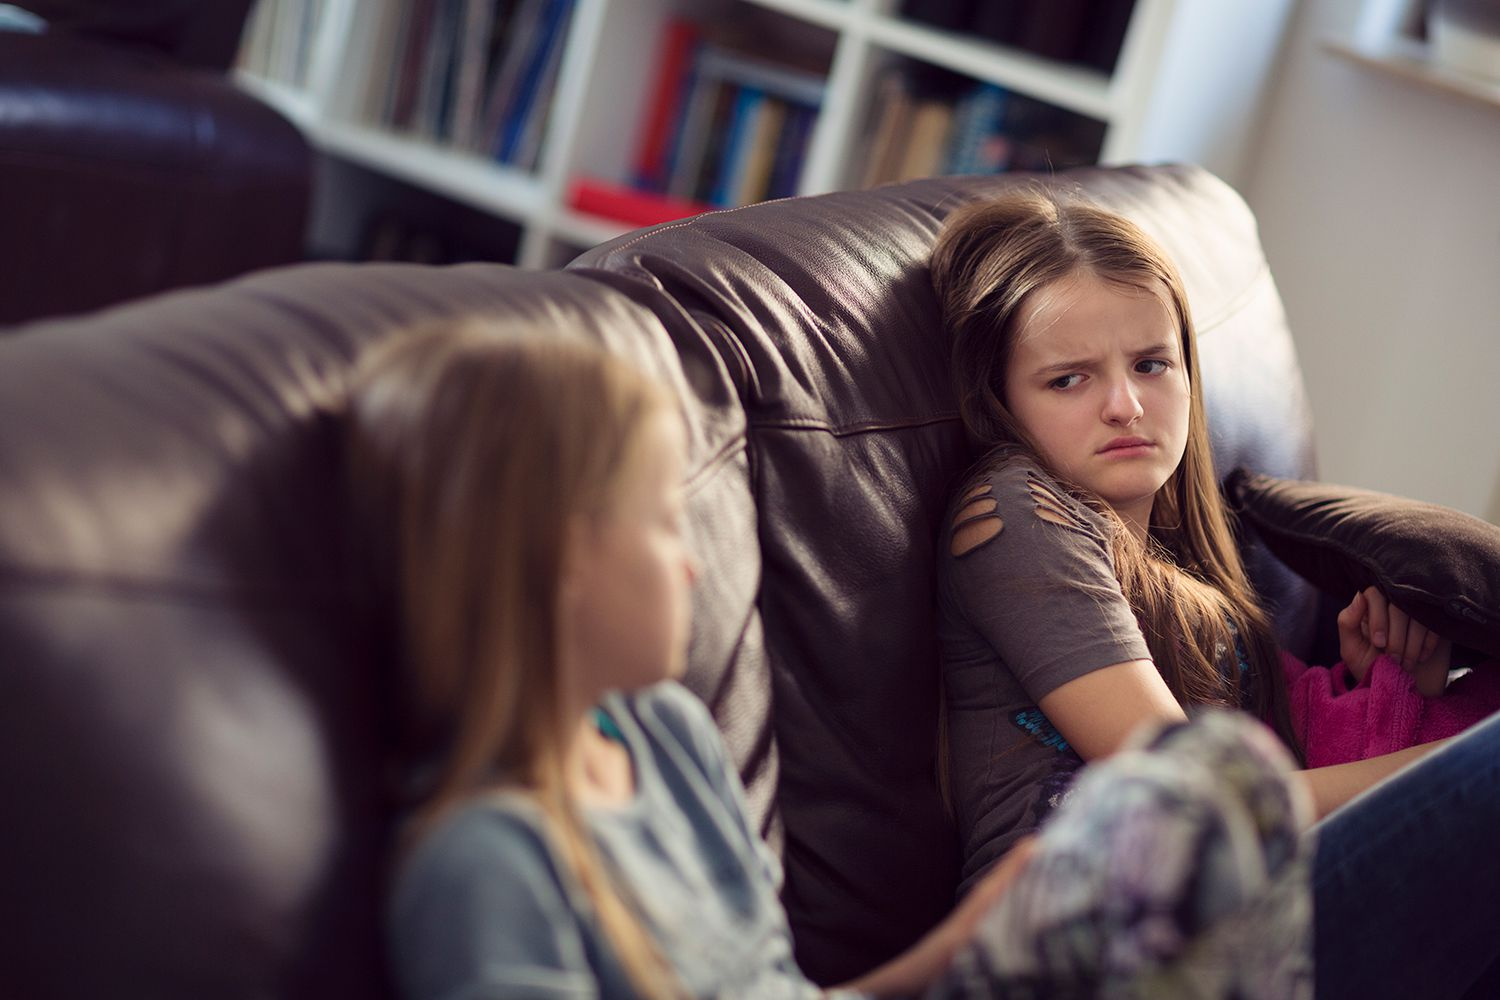 Two adolescent girls sitting on a sofa, annoyed at each other